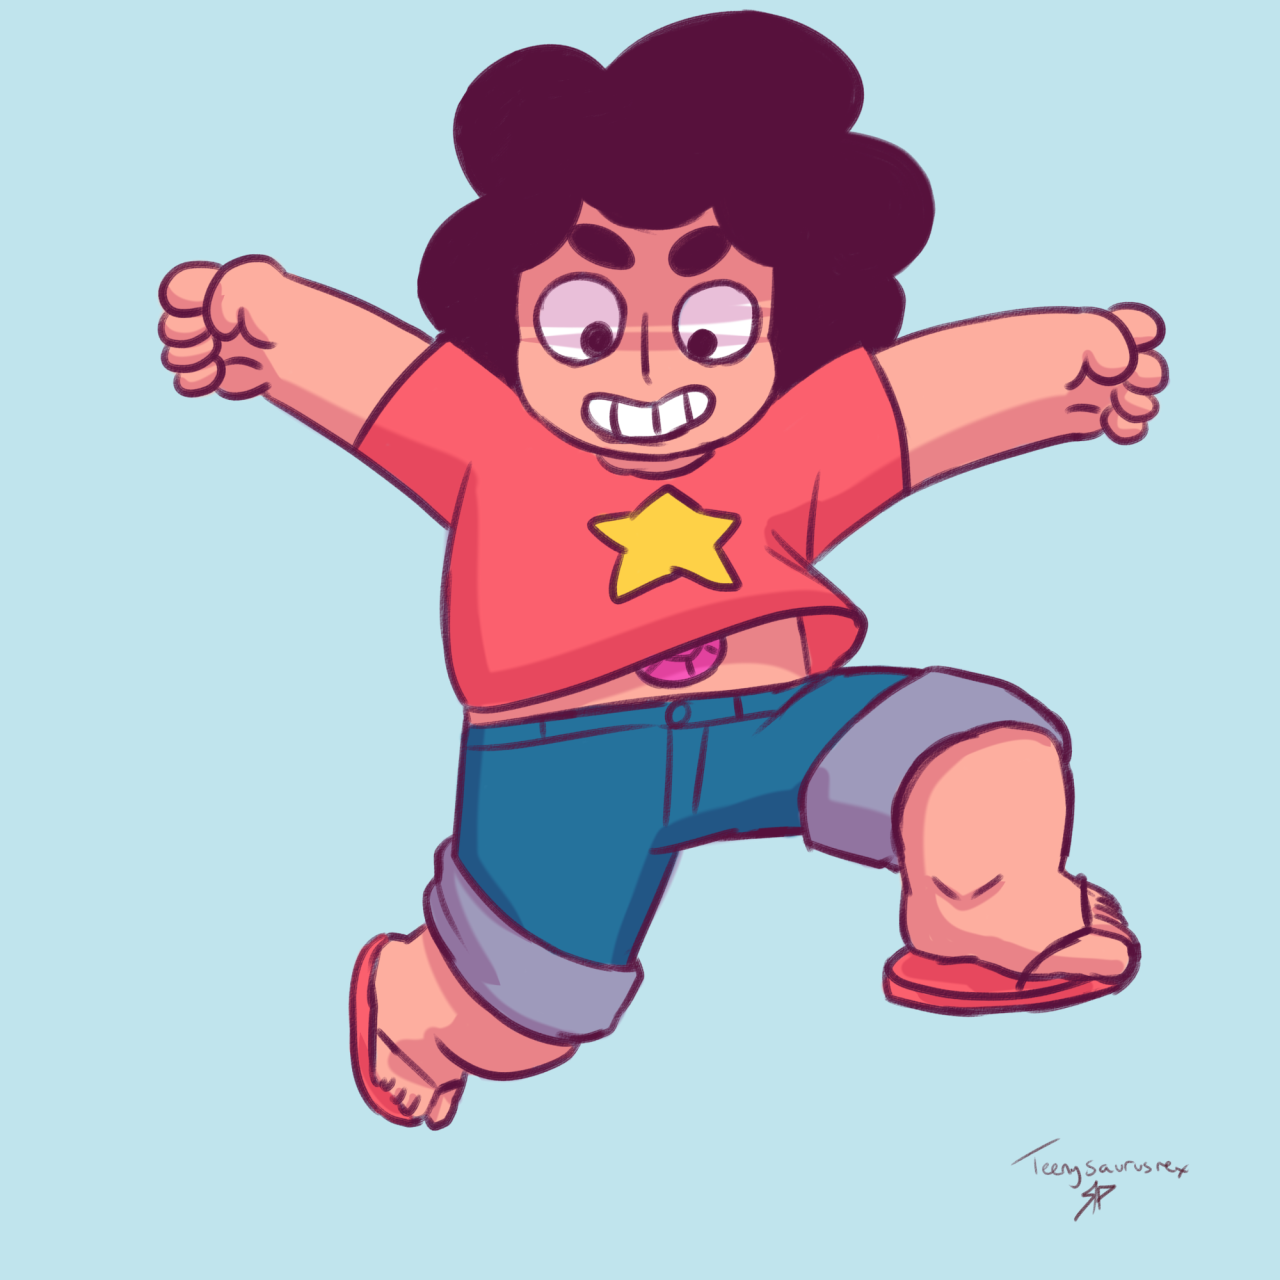 a tiny steven to brighten your day